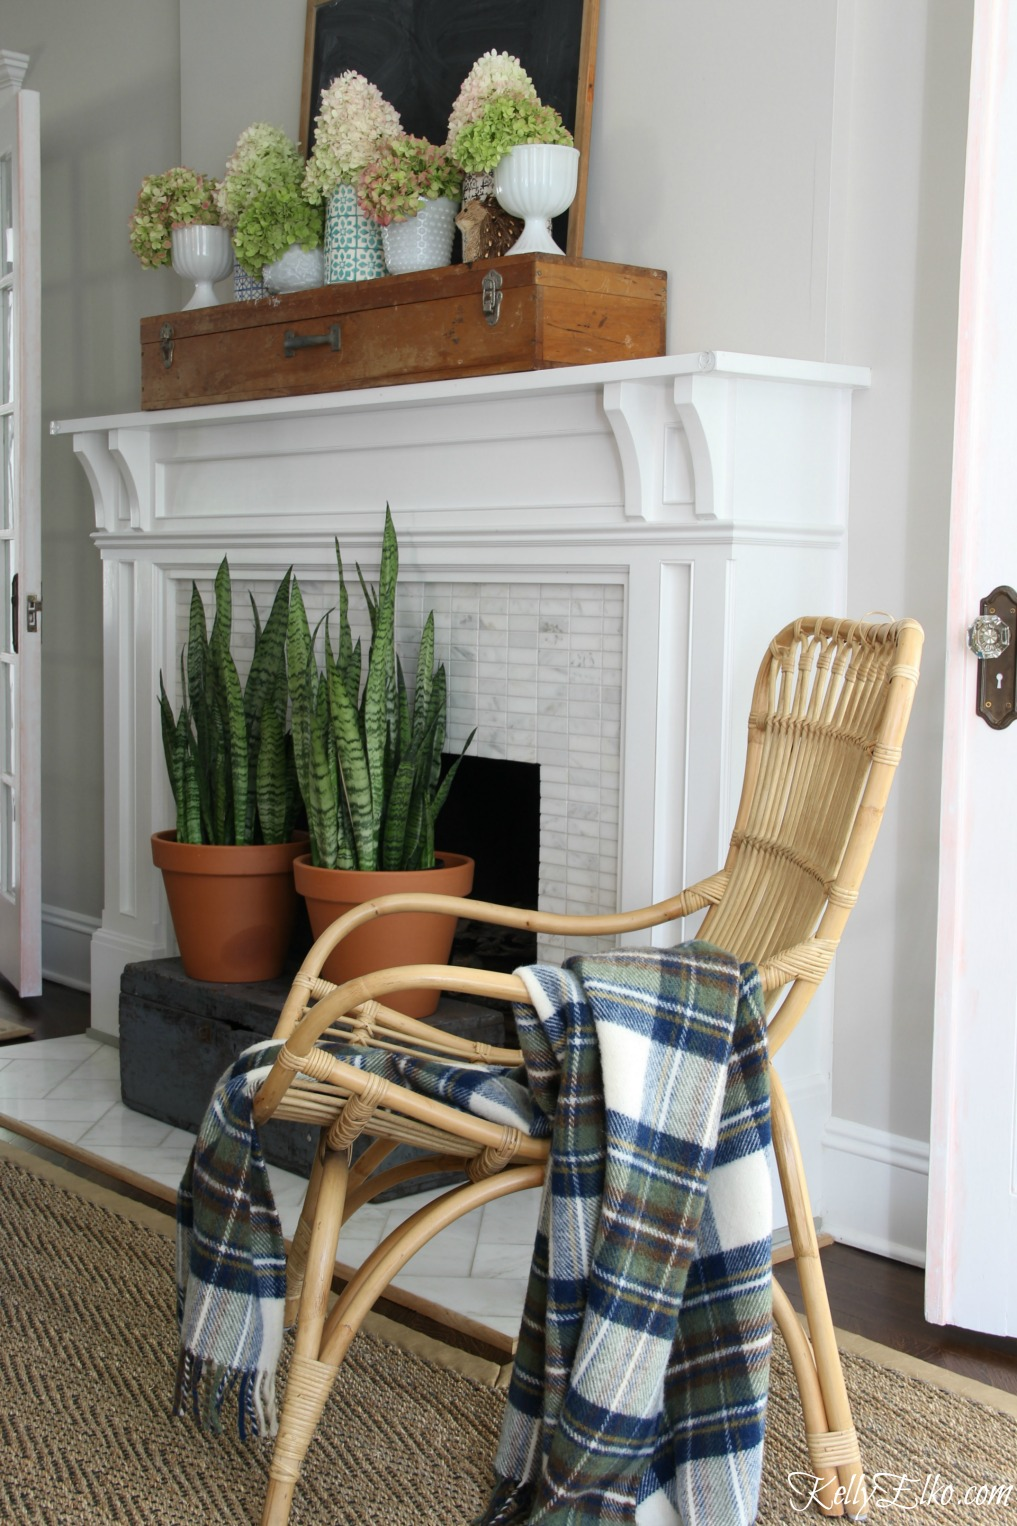 Love the boho feel of this living room with rattan chair, cozy wool throw and hydrangea filled mantel kellyelko.com